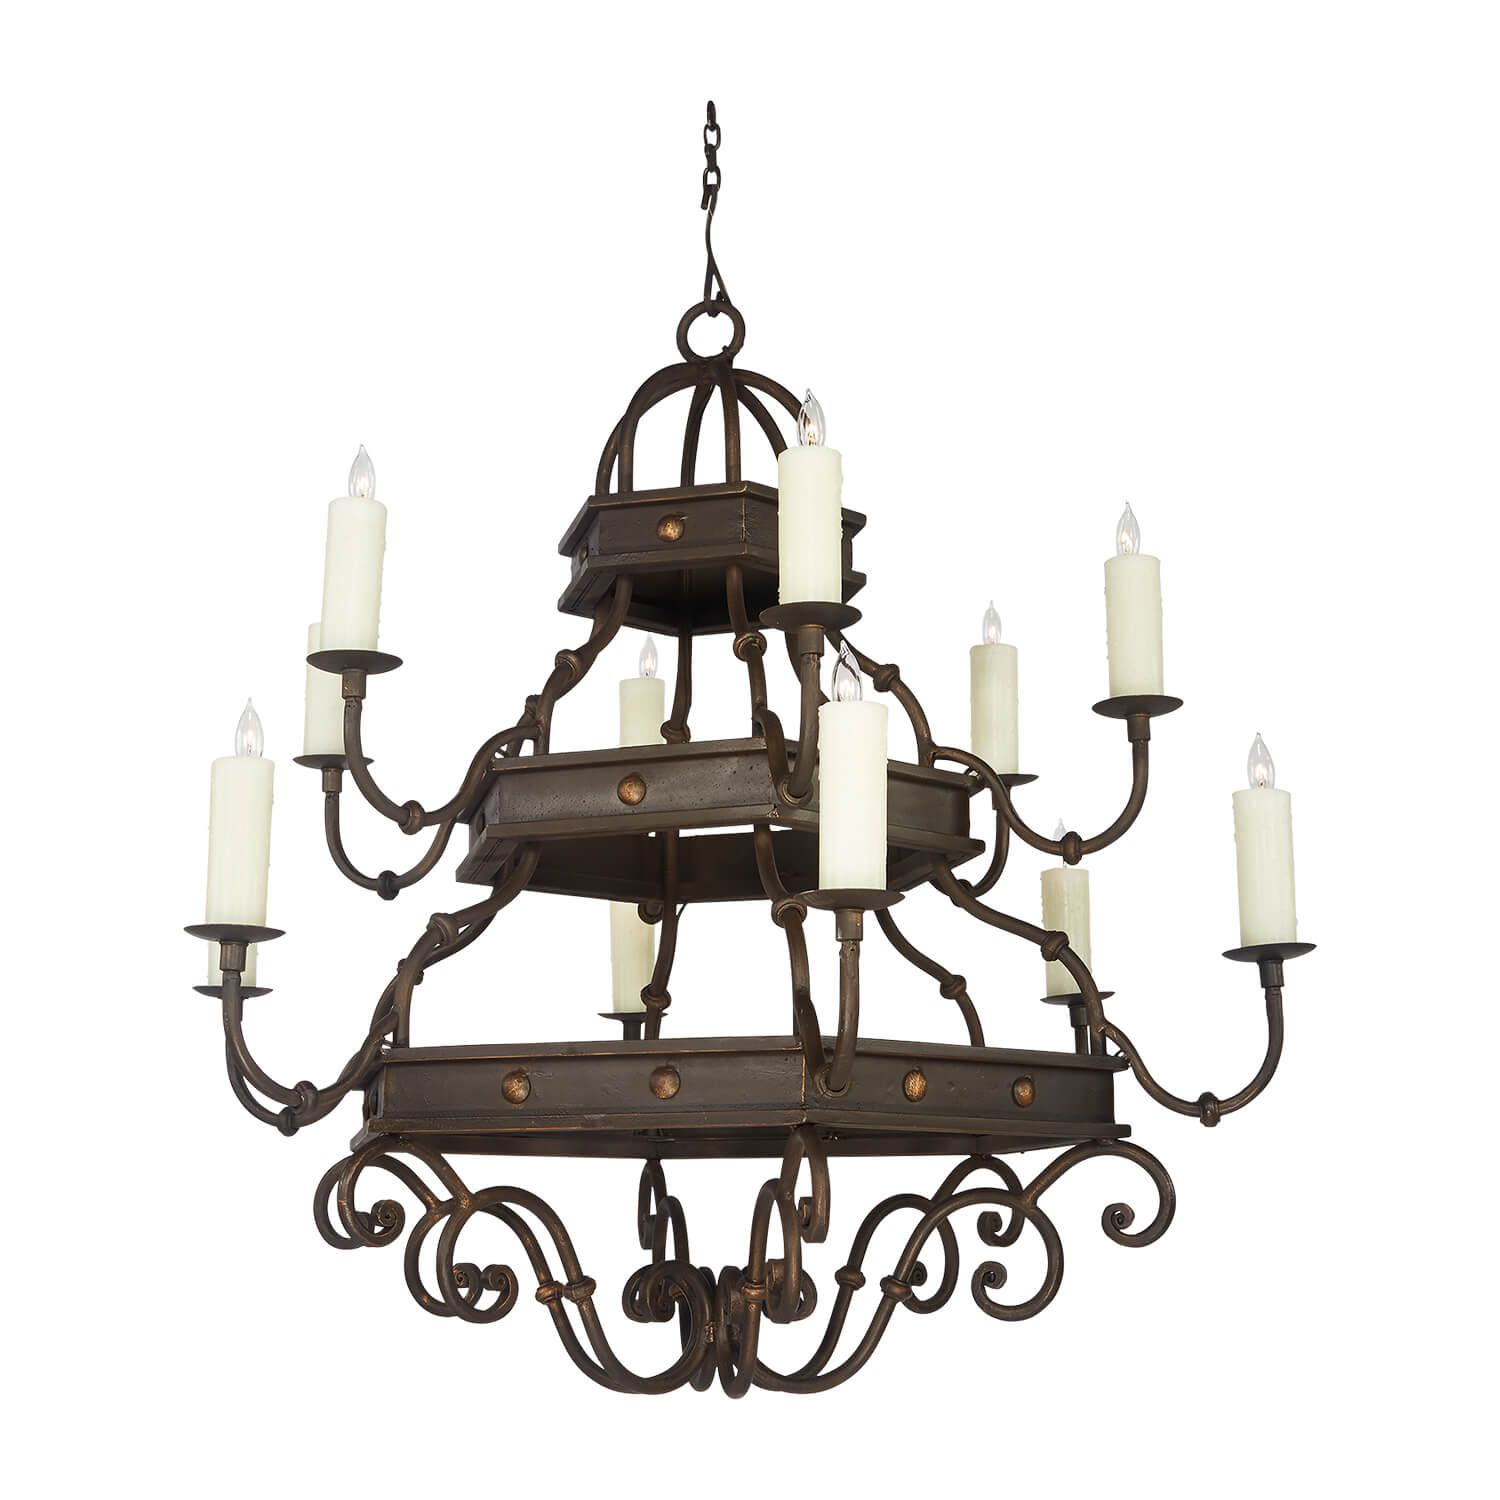 12 Light Venetian In 2020 Iron Chandeliers Wrought Iron